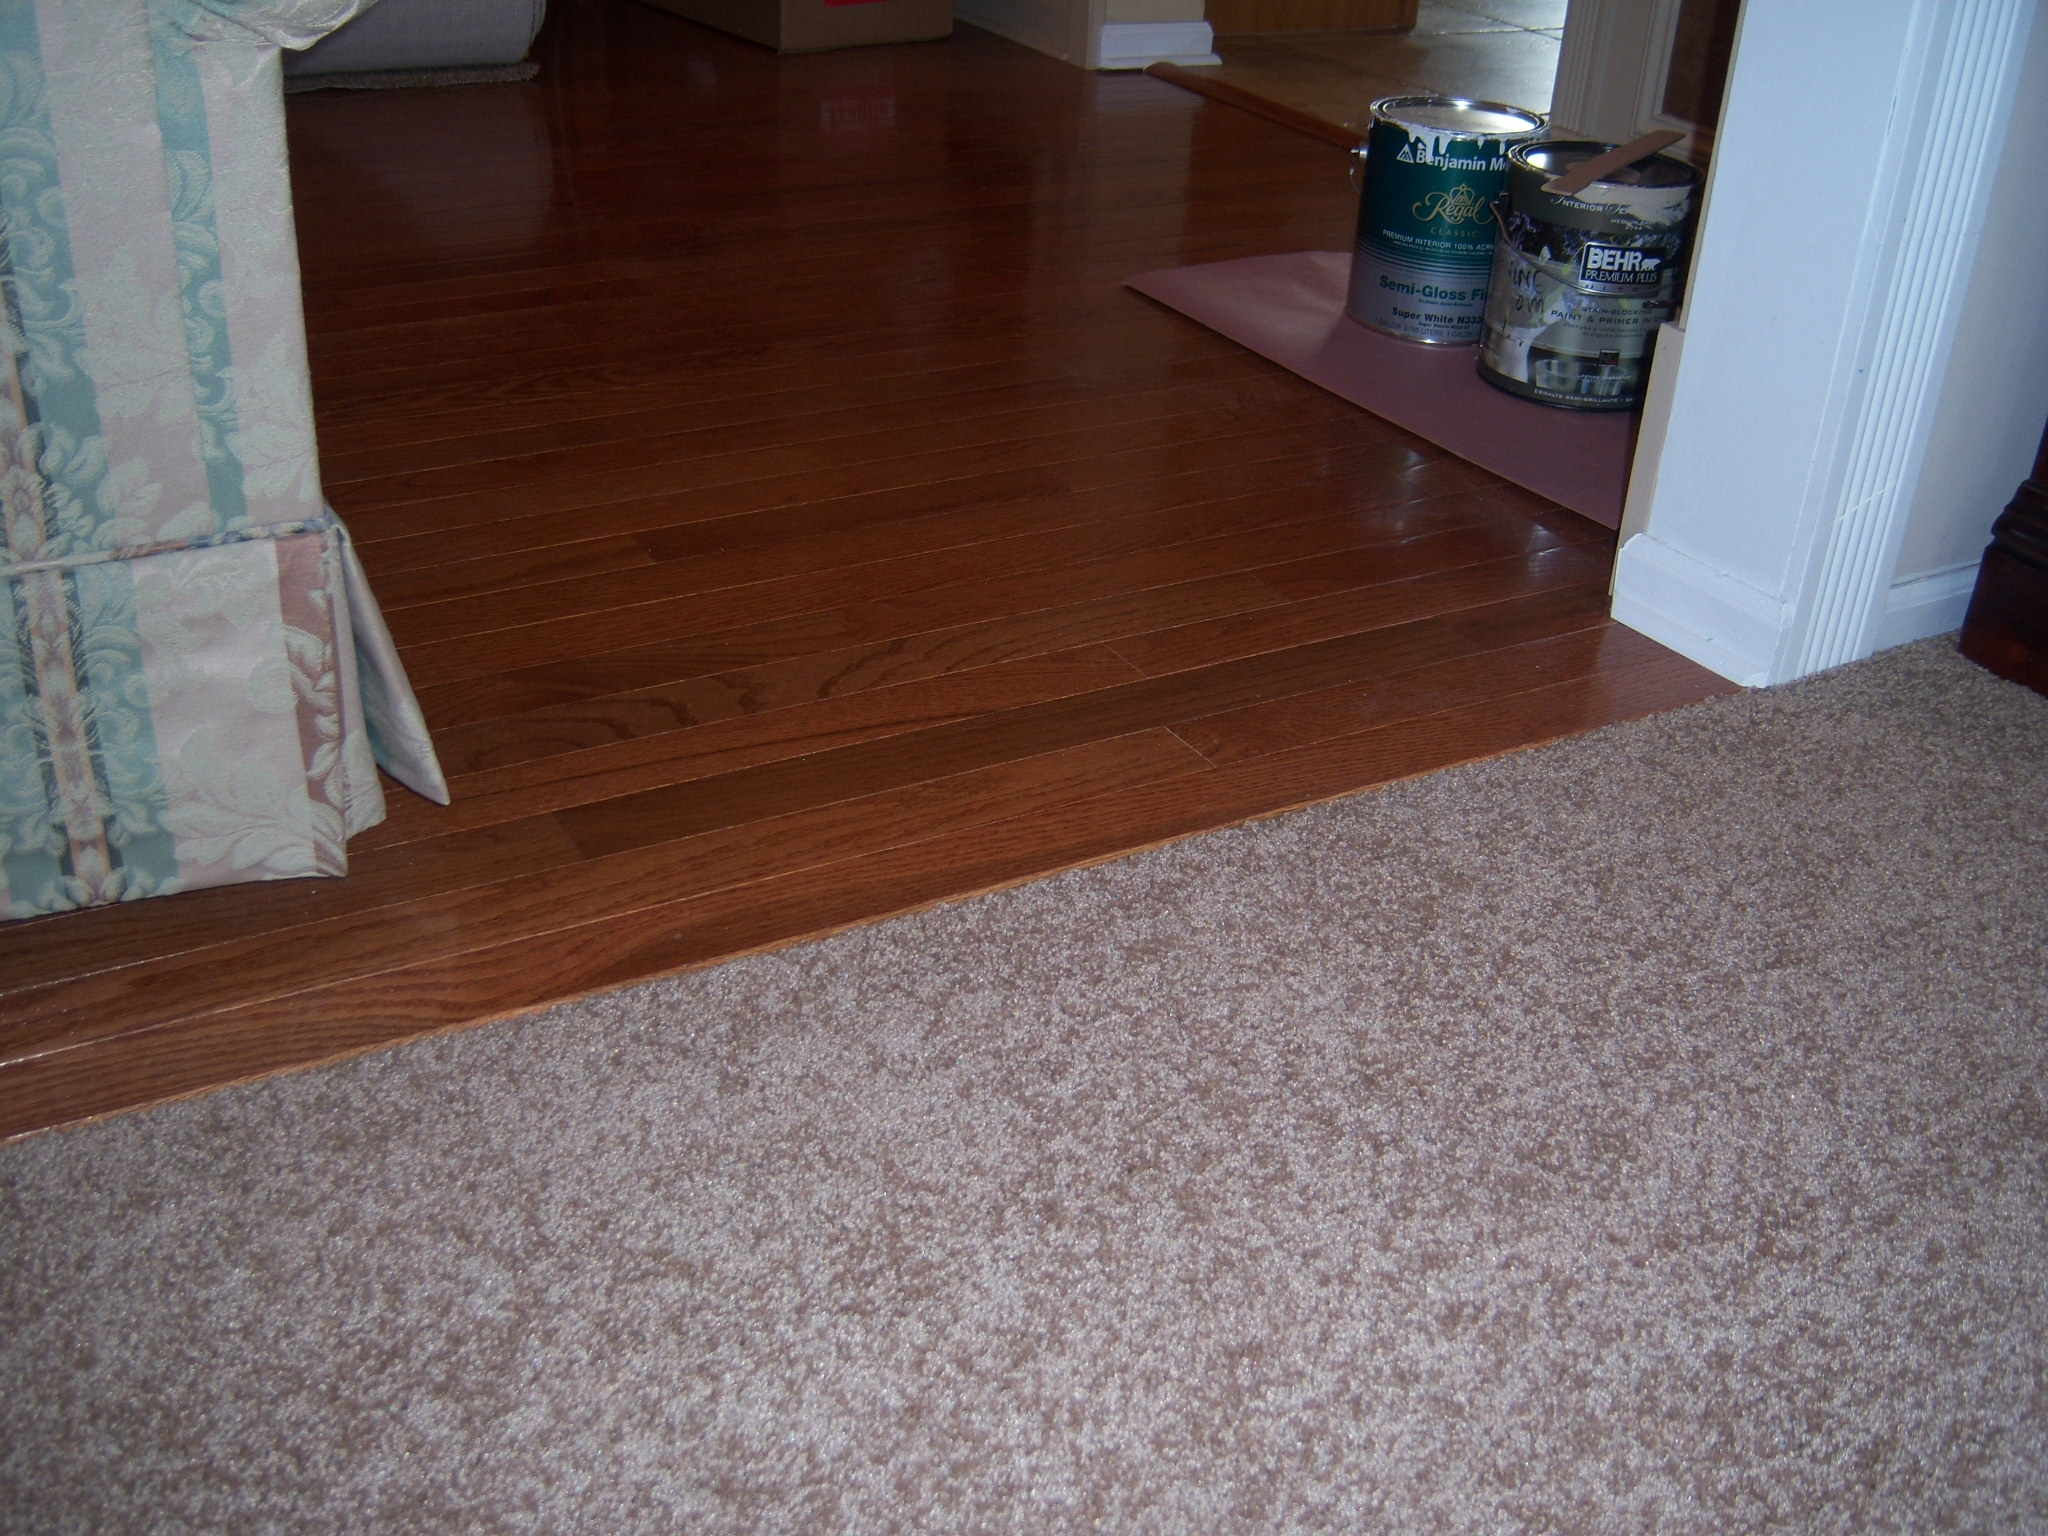 Transition Strip From Wood Floor To Carpet Flooring